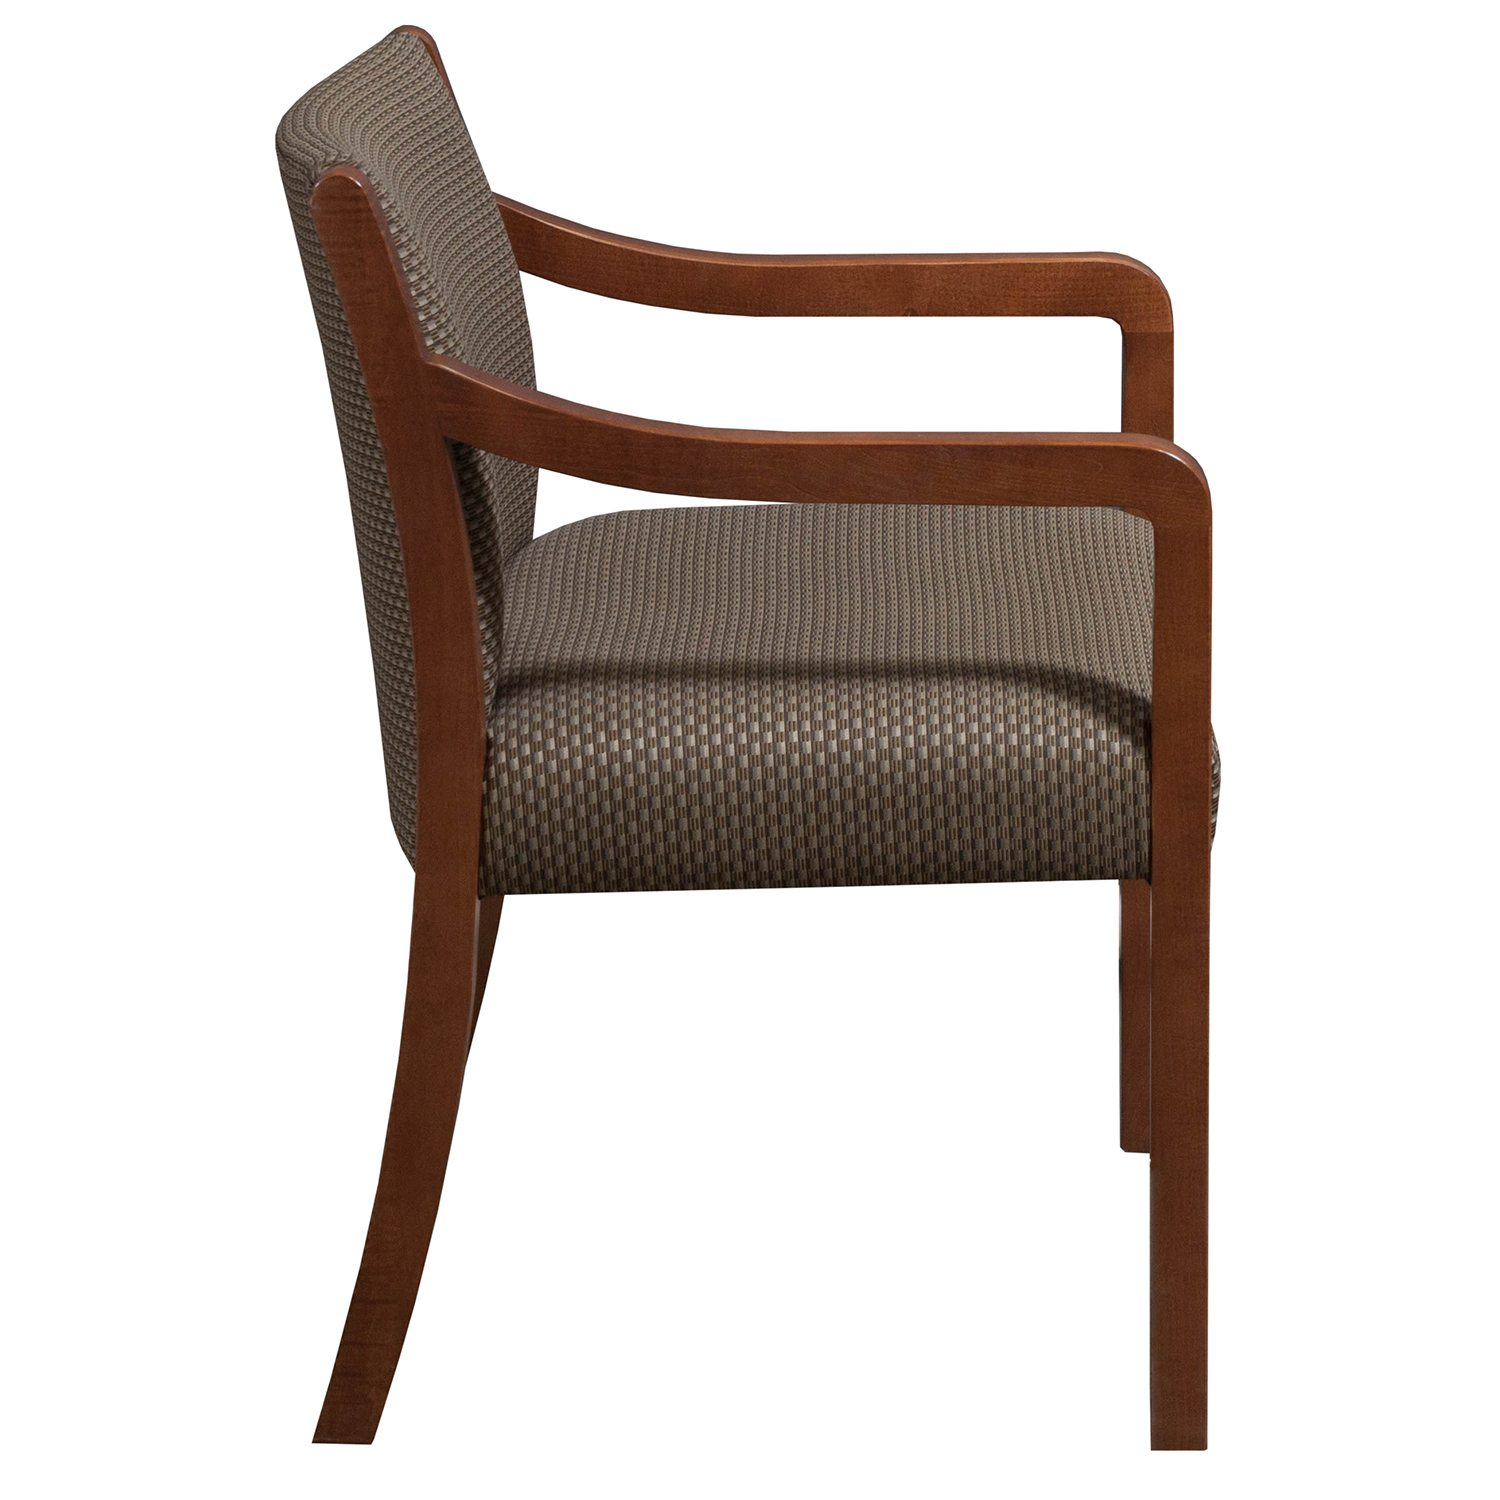 Cherry Chairs Jsi Used Wood Cherry Side Chair Brown Pattern National